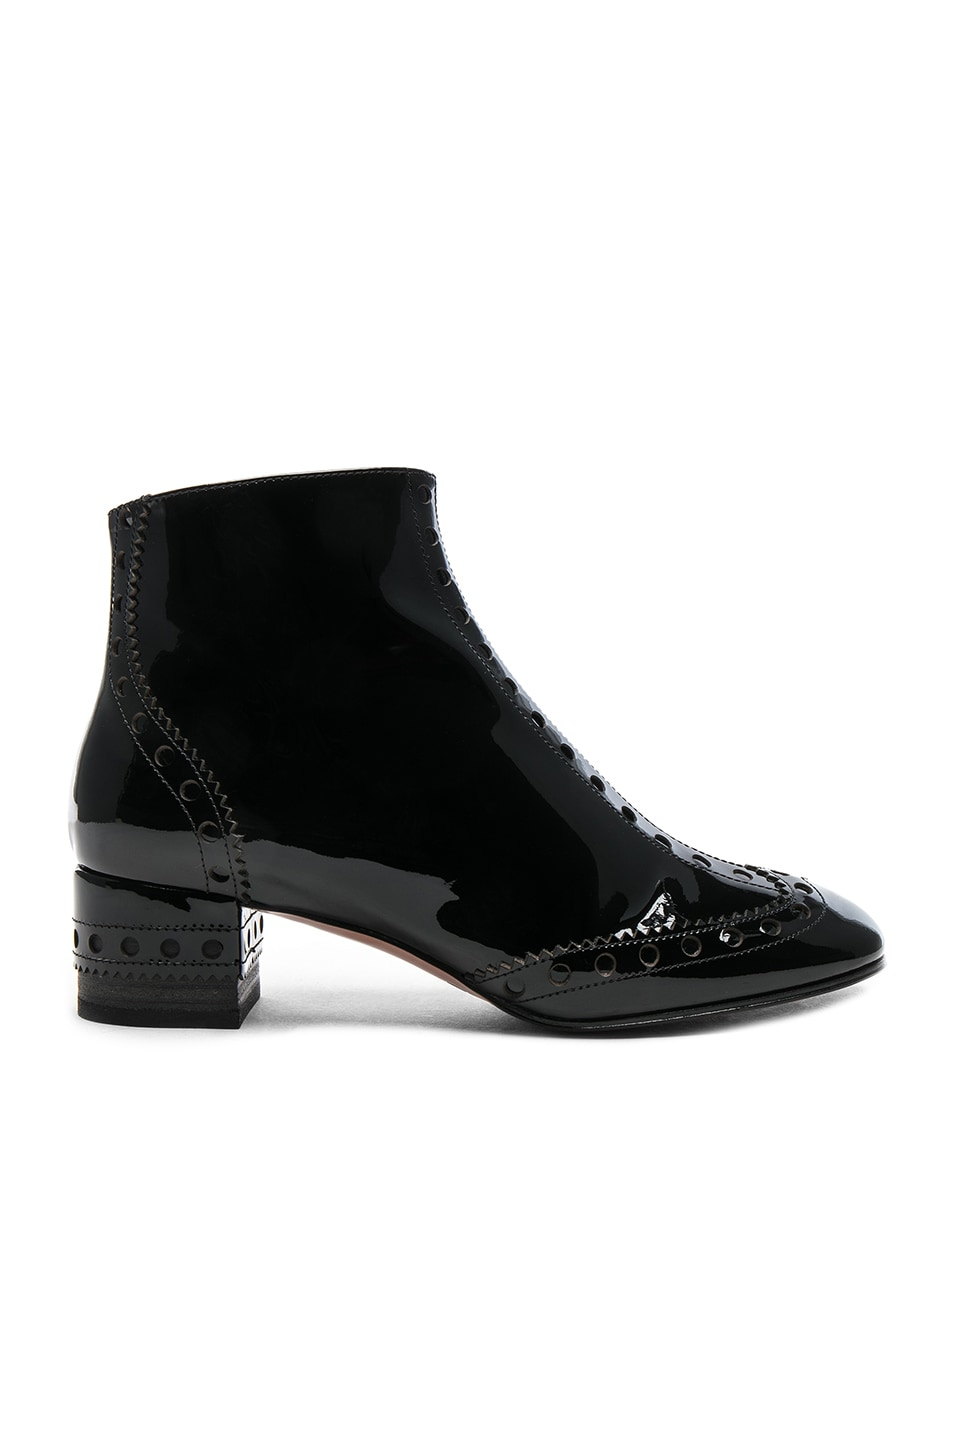 be6f85a8d0a9 Image 1 of Chloe Perry Patent Leather Ankle Boots in Black